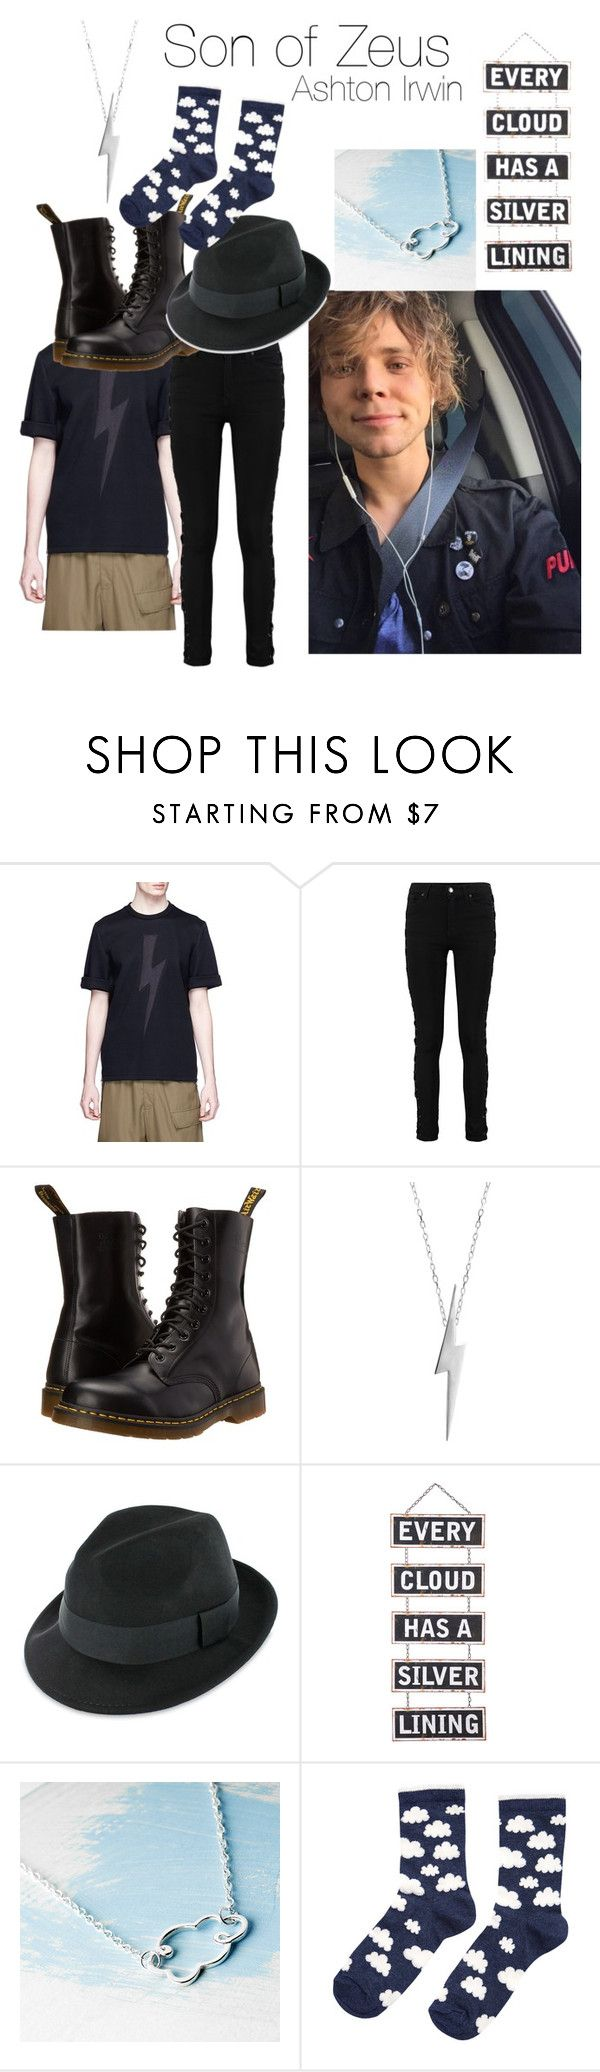 """""""Ashton Irwin - Son of Zeus"""" by themarveldemigod ❤ liked on Polyvore featuring Neil Barrett, Dr. Martens, Edge Only, Silver Lining, Kalk Bay and Accessorize"""